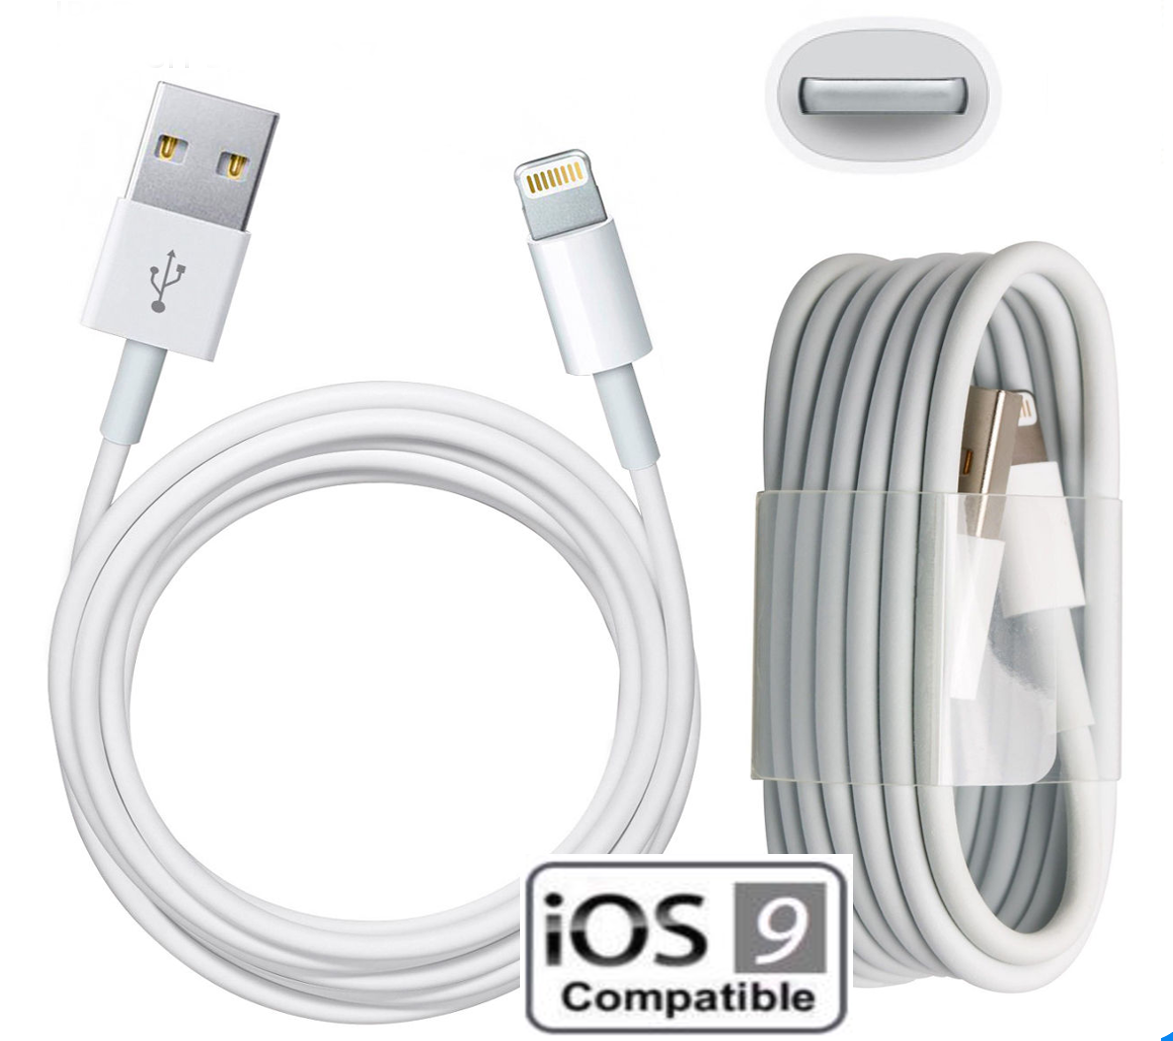 Cable Usb Chargeur pour Apple iPhone 5 / 5S / SE